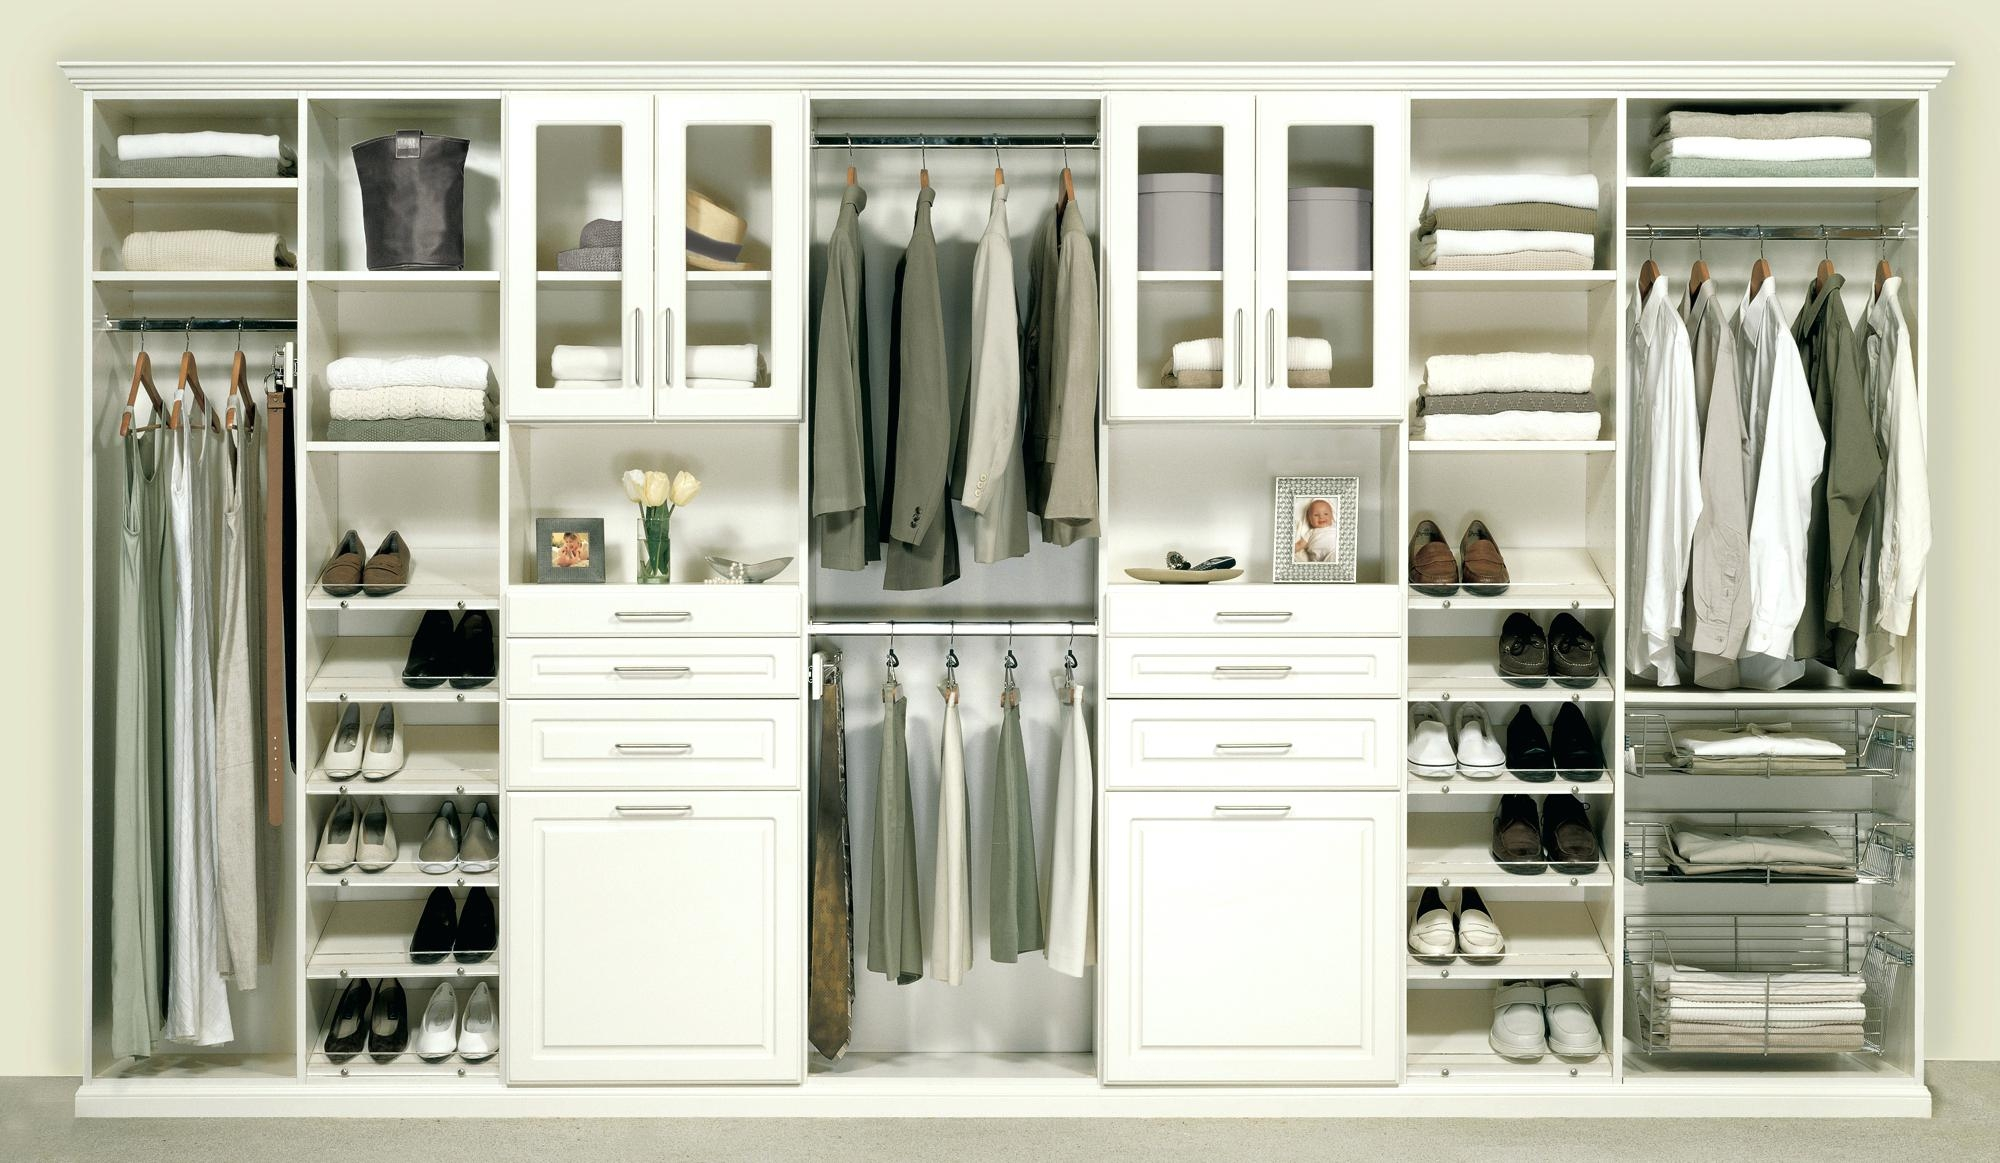 Fantastic Furniture Storage Cabinetsclothes storage cabinet furniture fantastic bradcarter